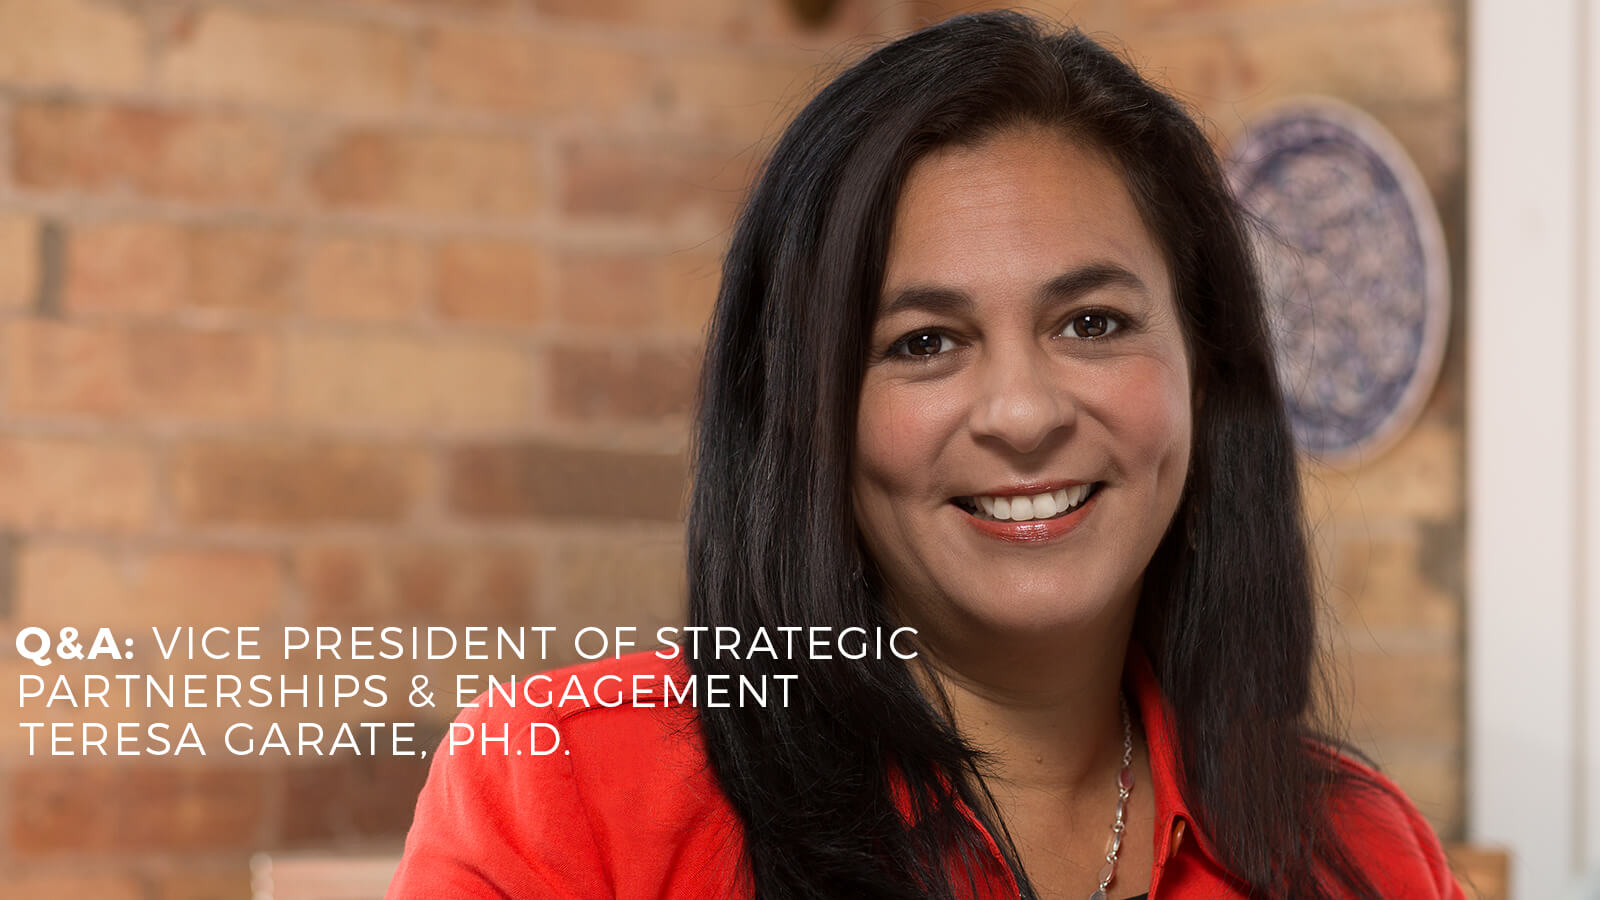 Interview with VP of Strategic Partnerships and Engagement Teresa Garate, PhD